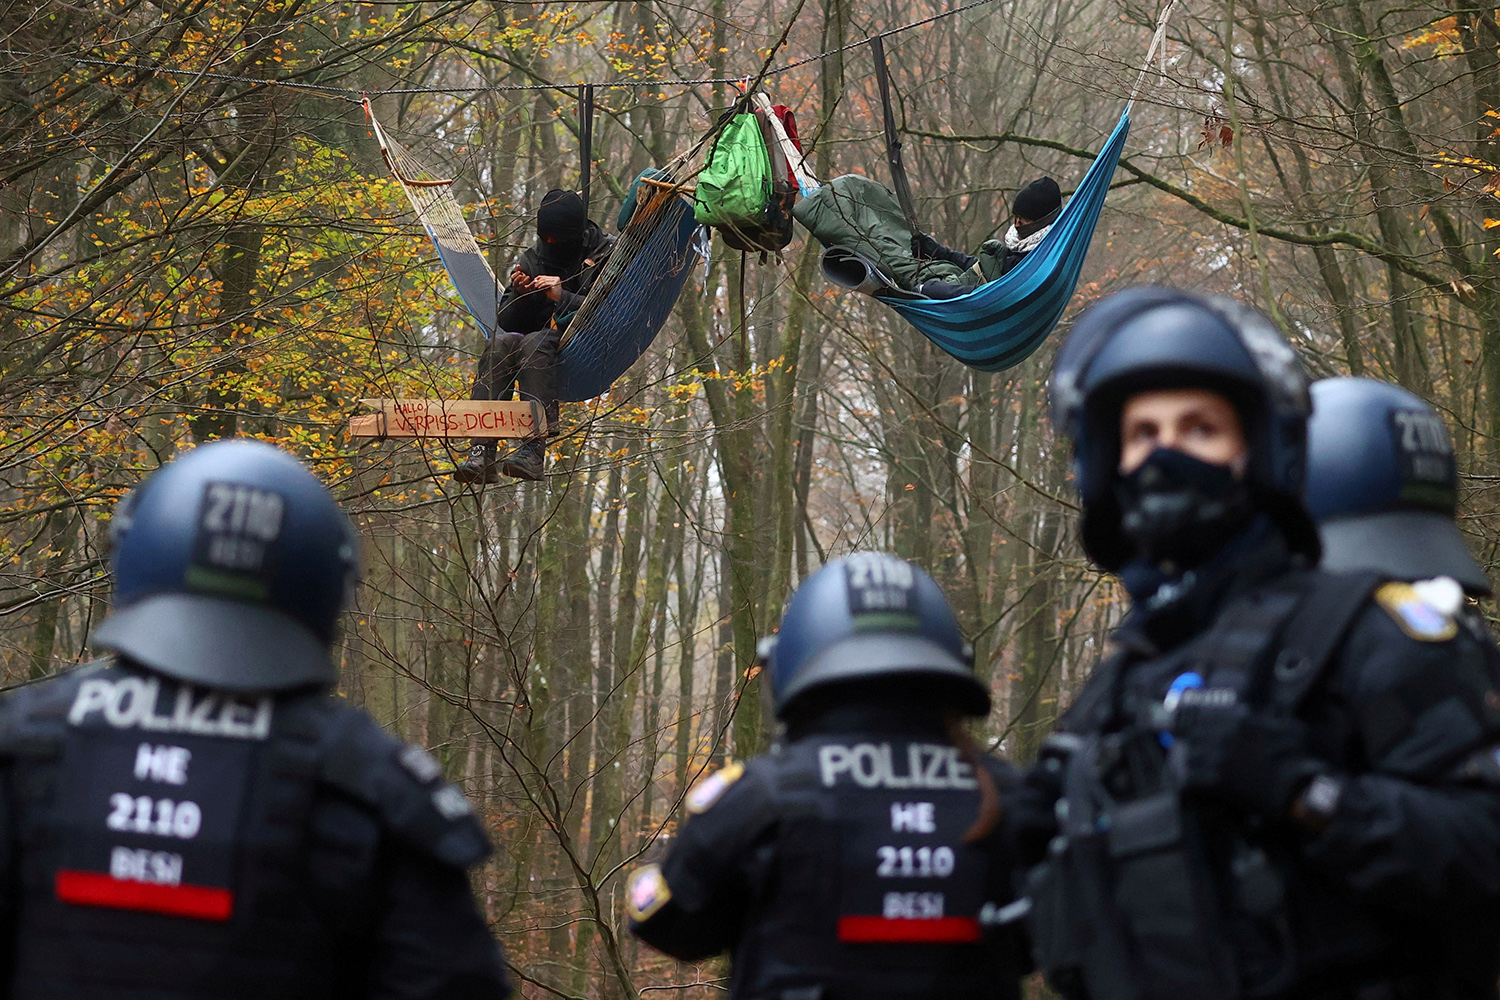 Demonstrators in hammocks hang from trees during a protest against the extension of the A49 motorway in a forest near Stadtallendorf, Germany, on Nov. 11. Kai Pfaffenbach/REUTERS